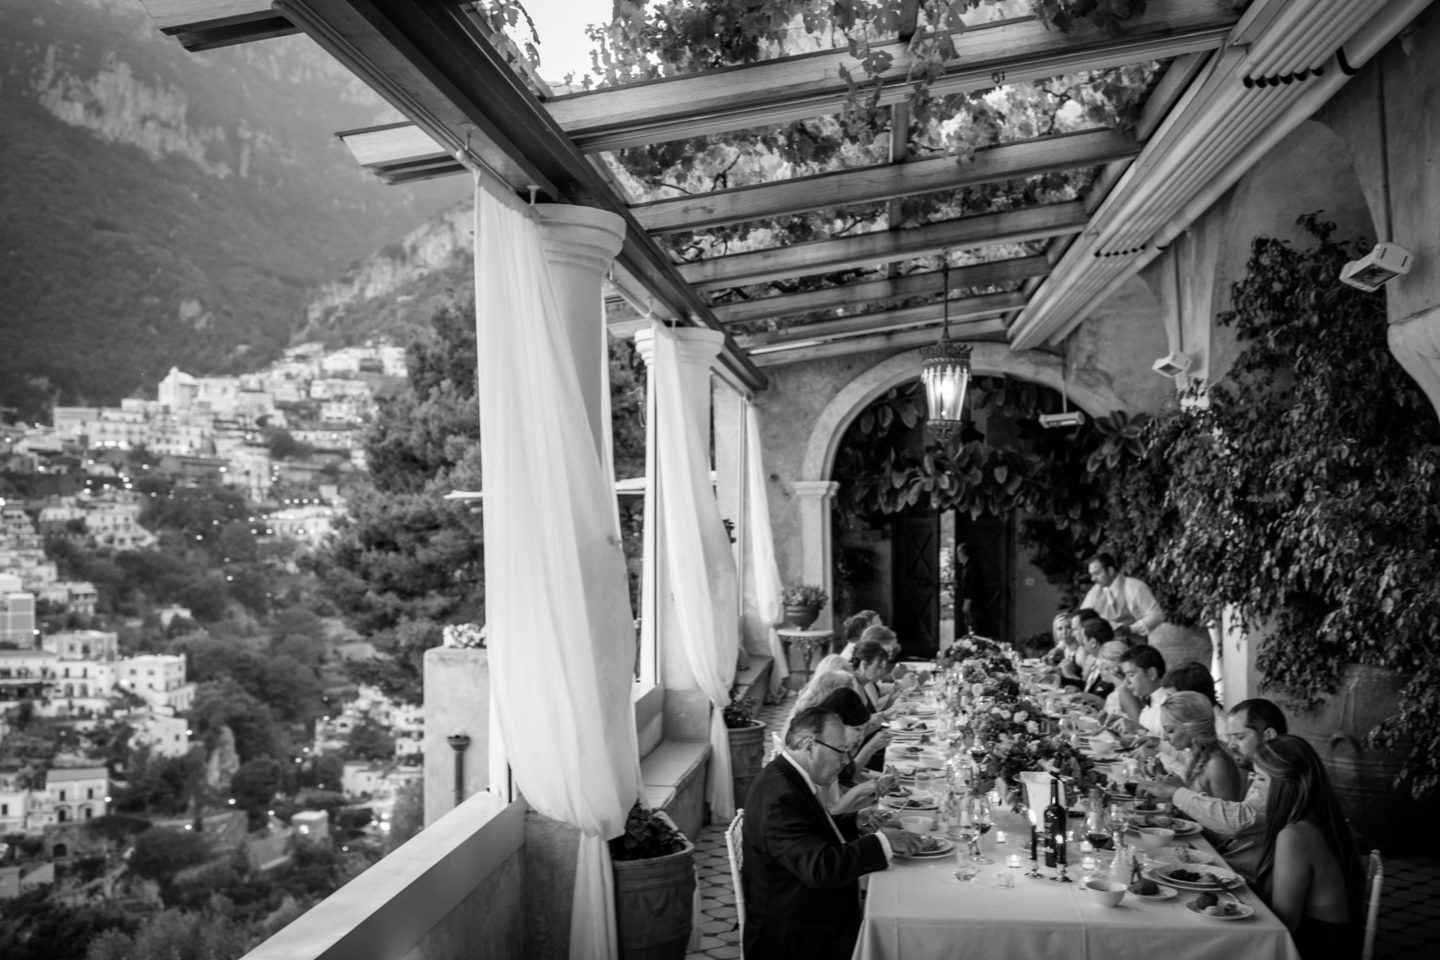 Invited :: Wedding in Positano. Sea and love :: Luxury wedding photography - 56 :: Invited